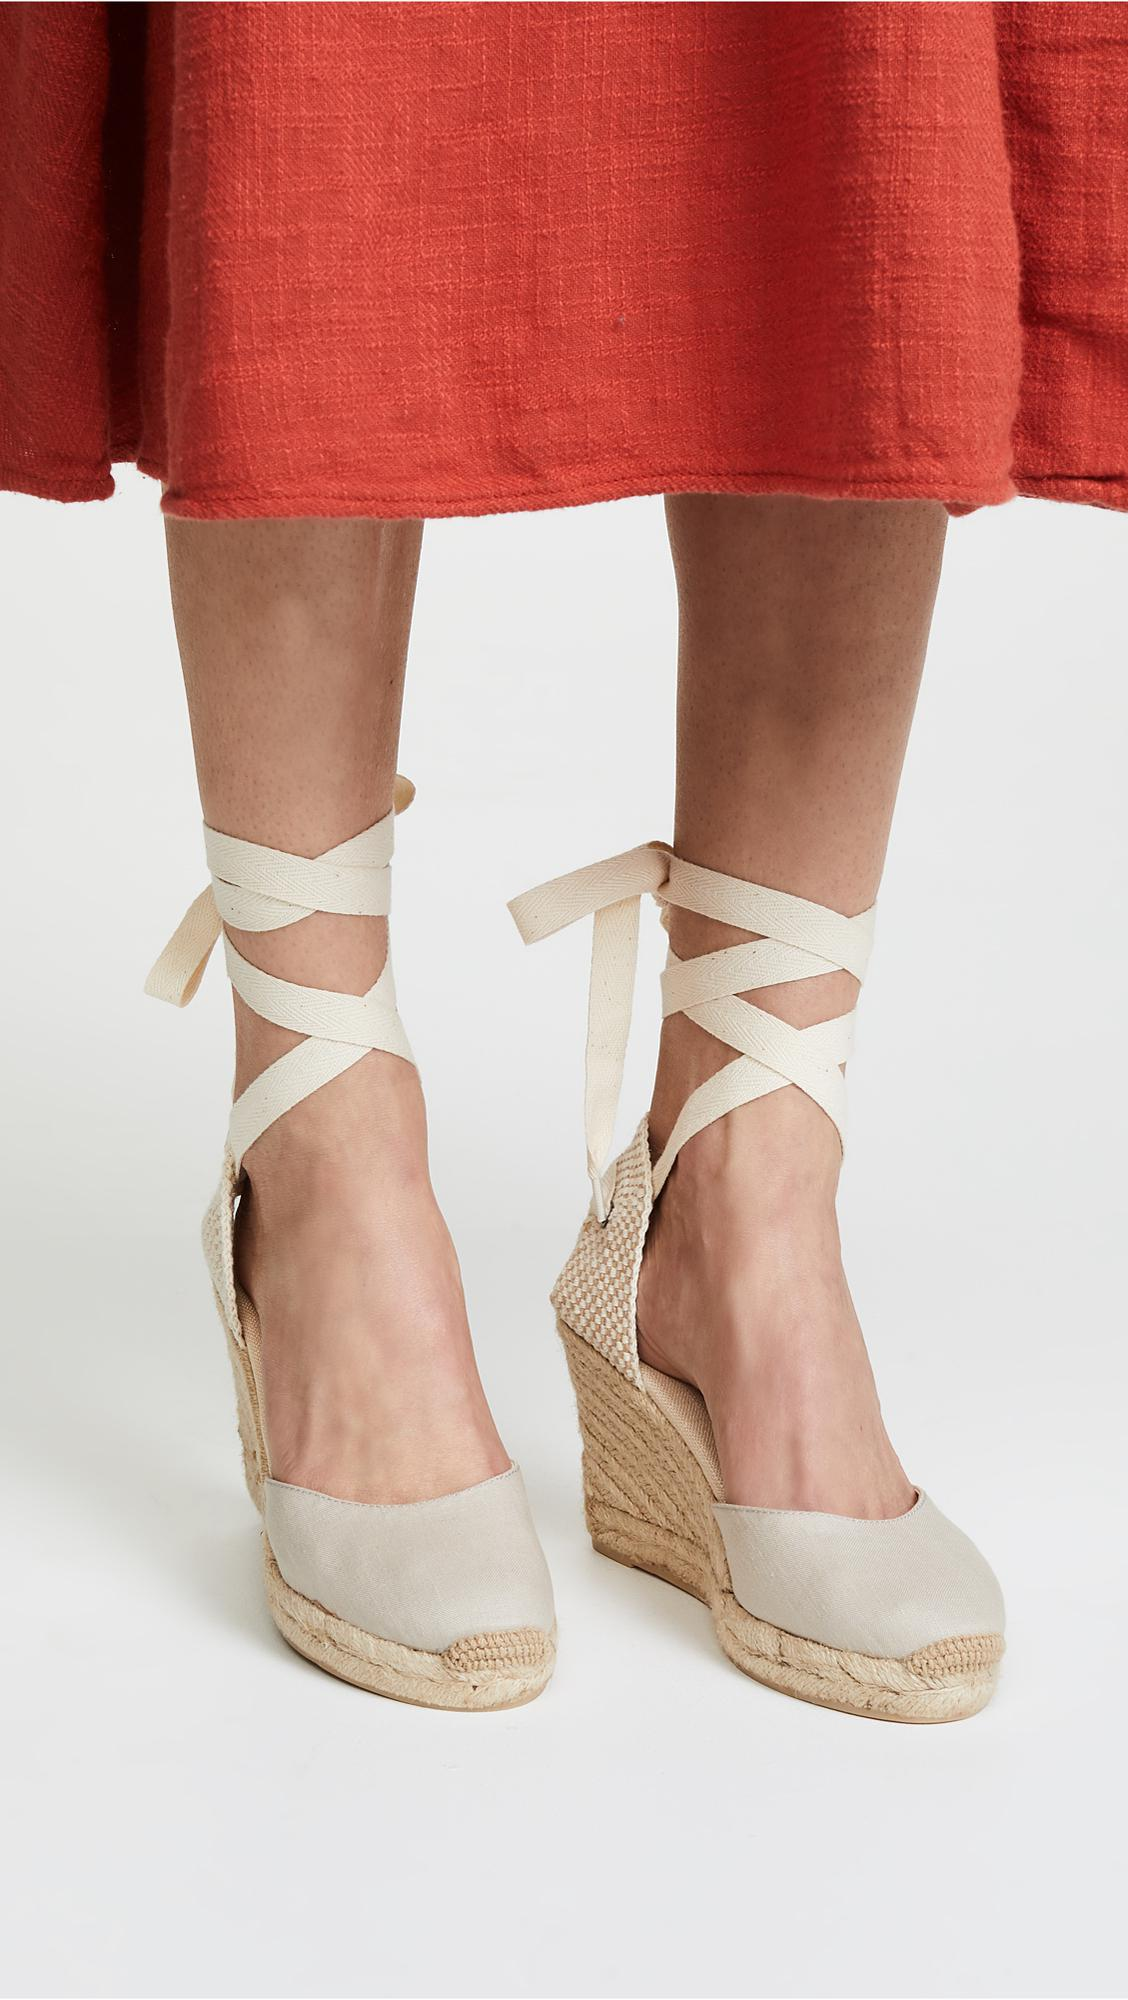 6d0c906d100 Lyst - Soludos Tall Wedge Espadrilles in Gray